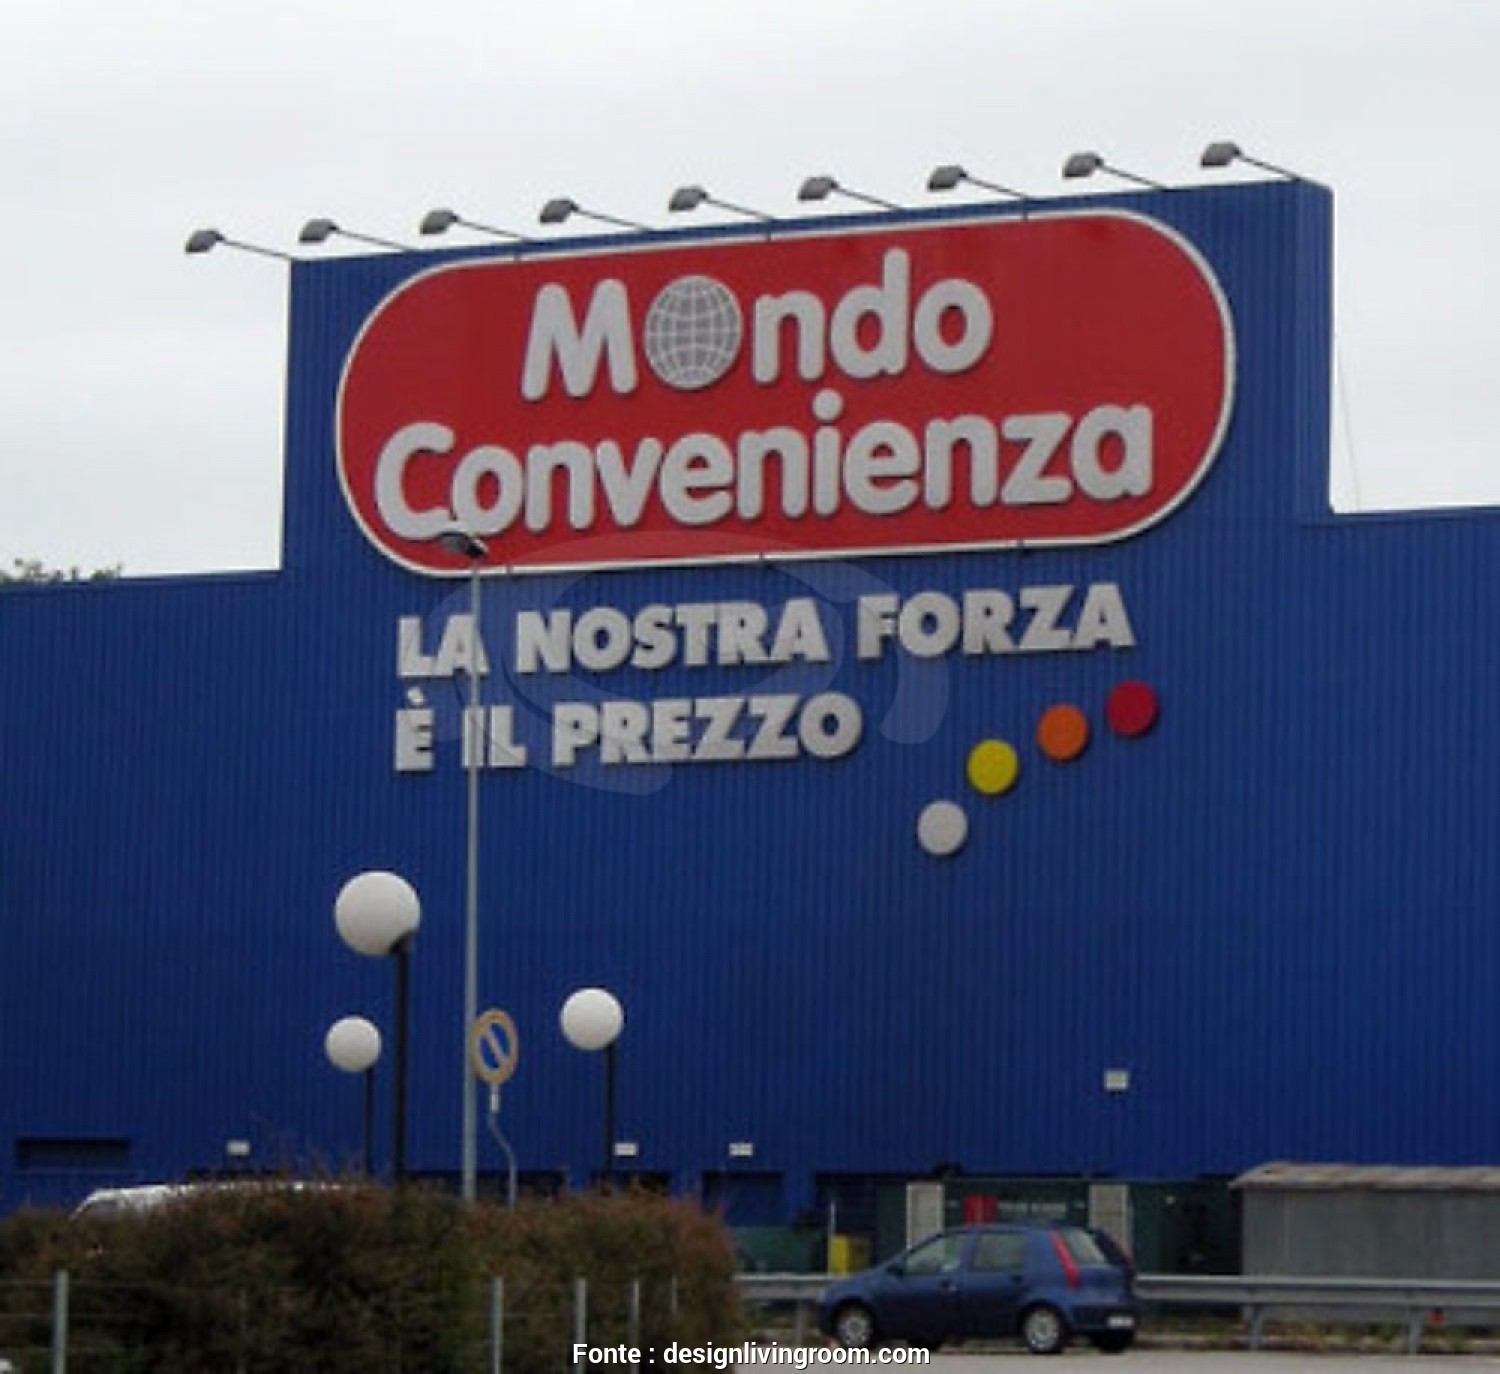 Outlet Mondo Convenienza Roma Civitavecchia, Ideale Mondo Convenienza. Mondo Convenienza With Mondo Convenienza. Cool